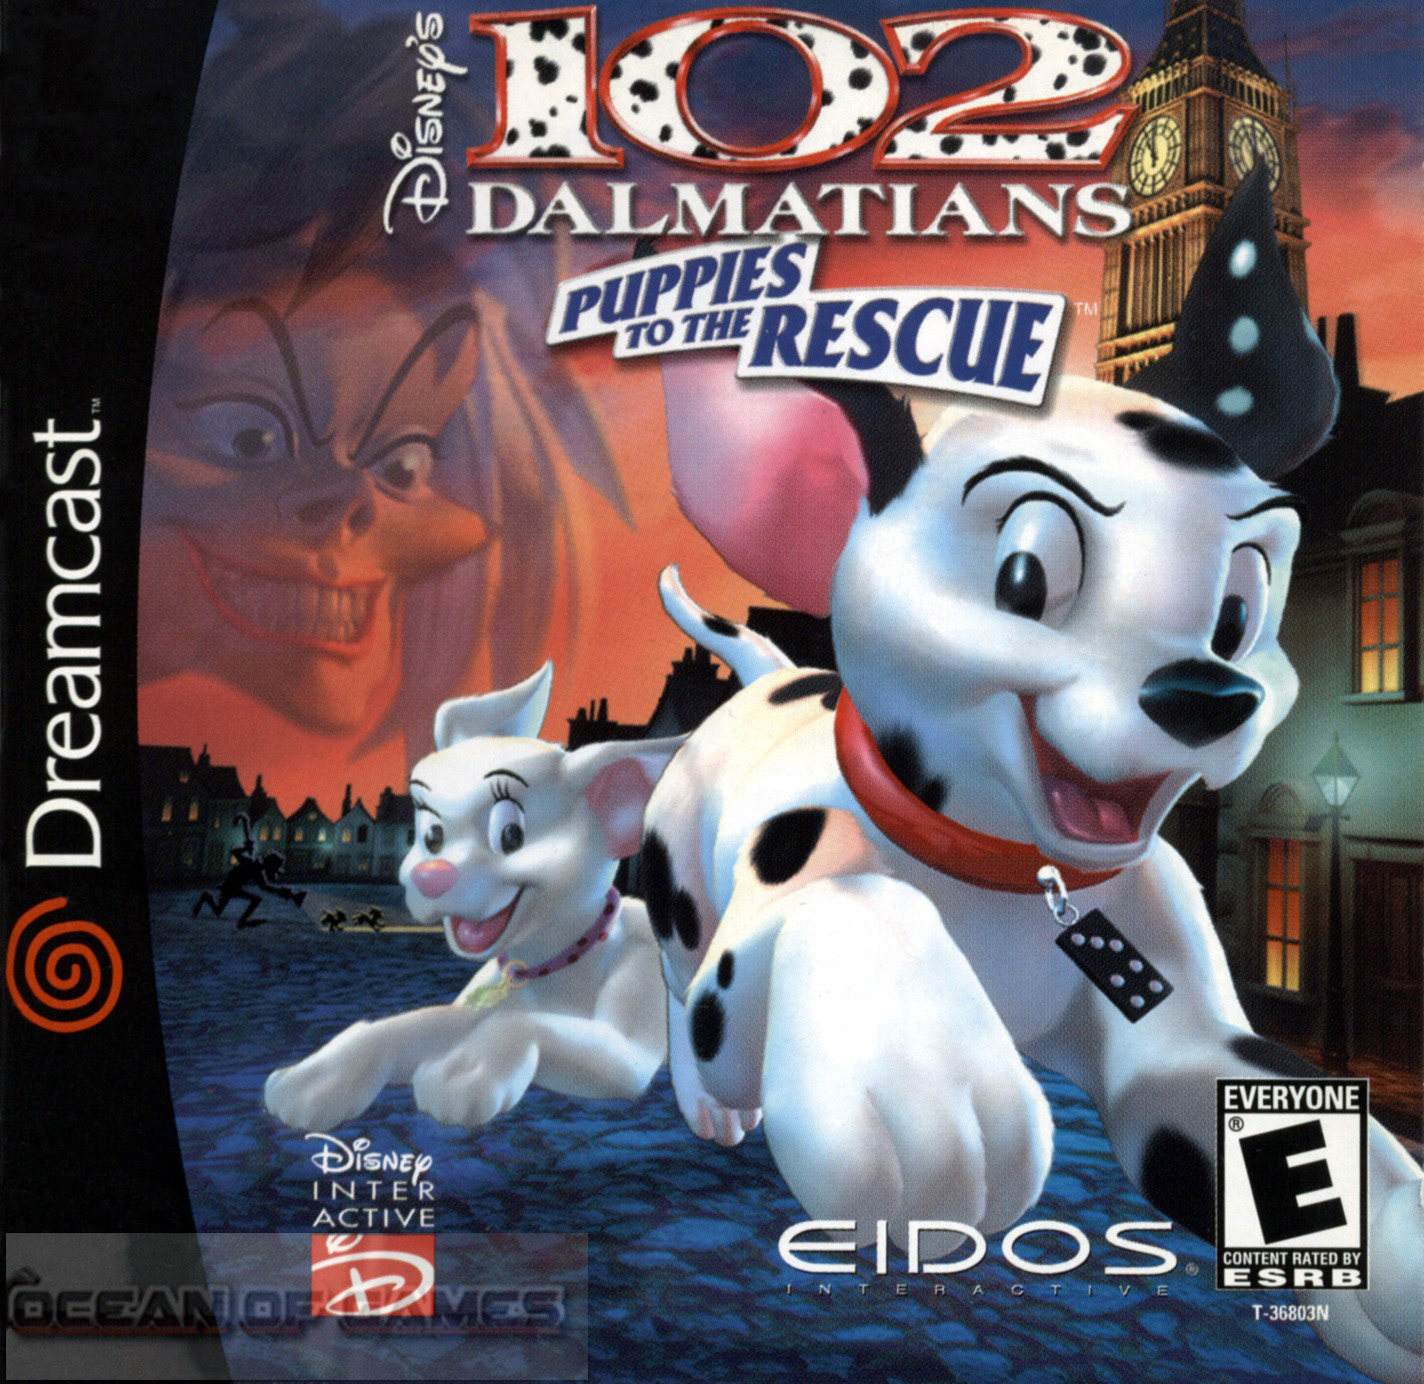 102 dalmatians puppies to the rescue download free